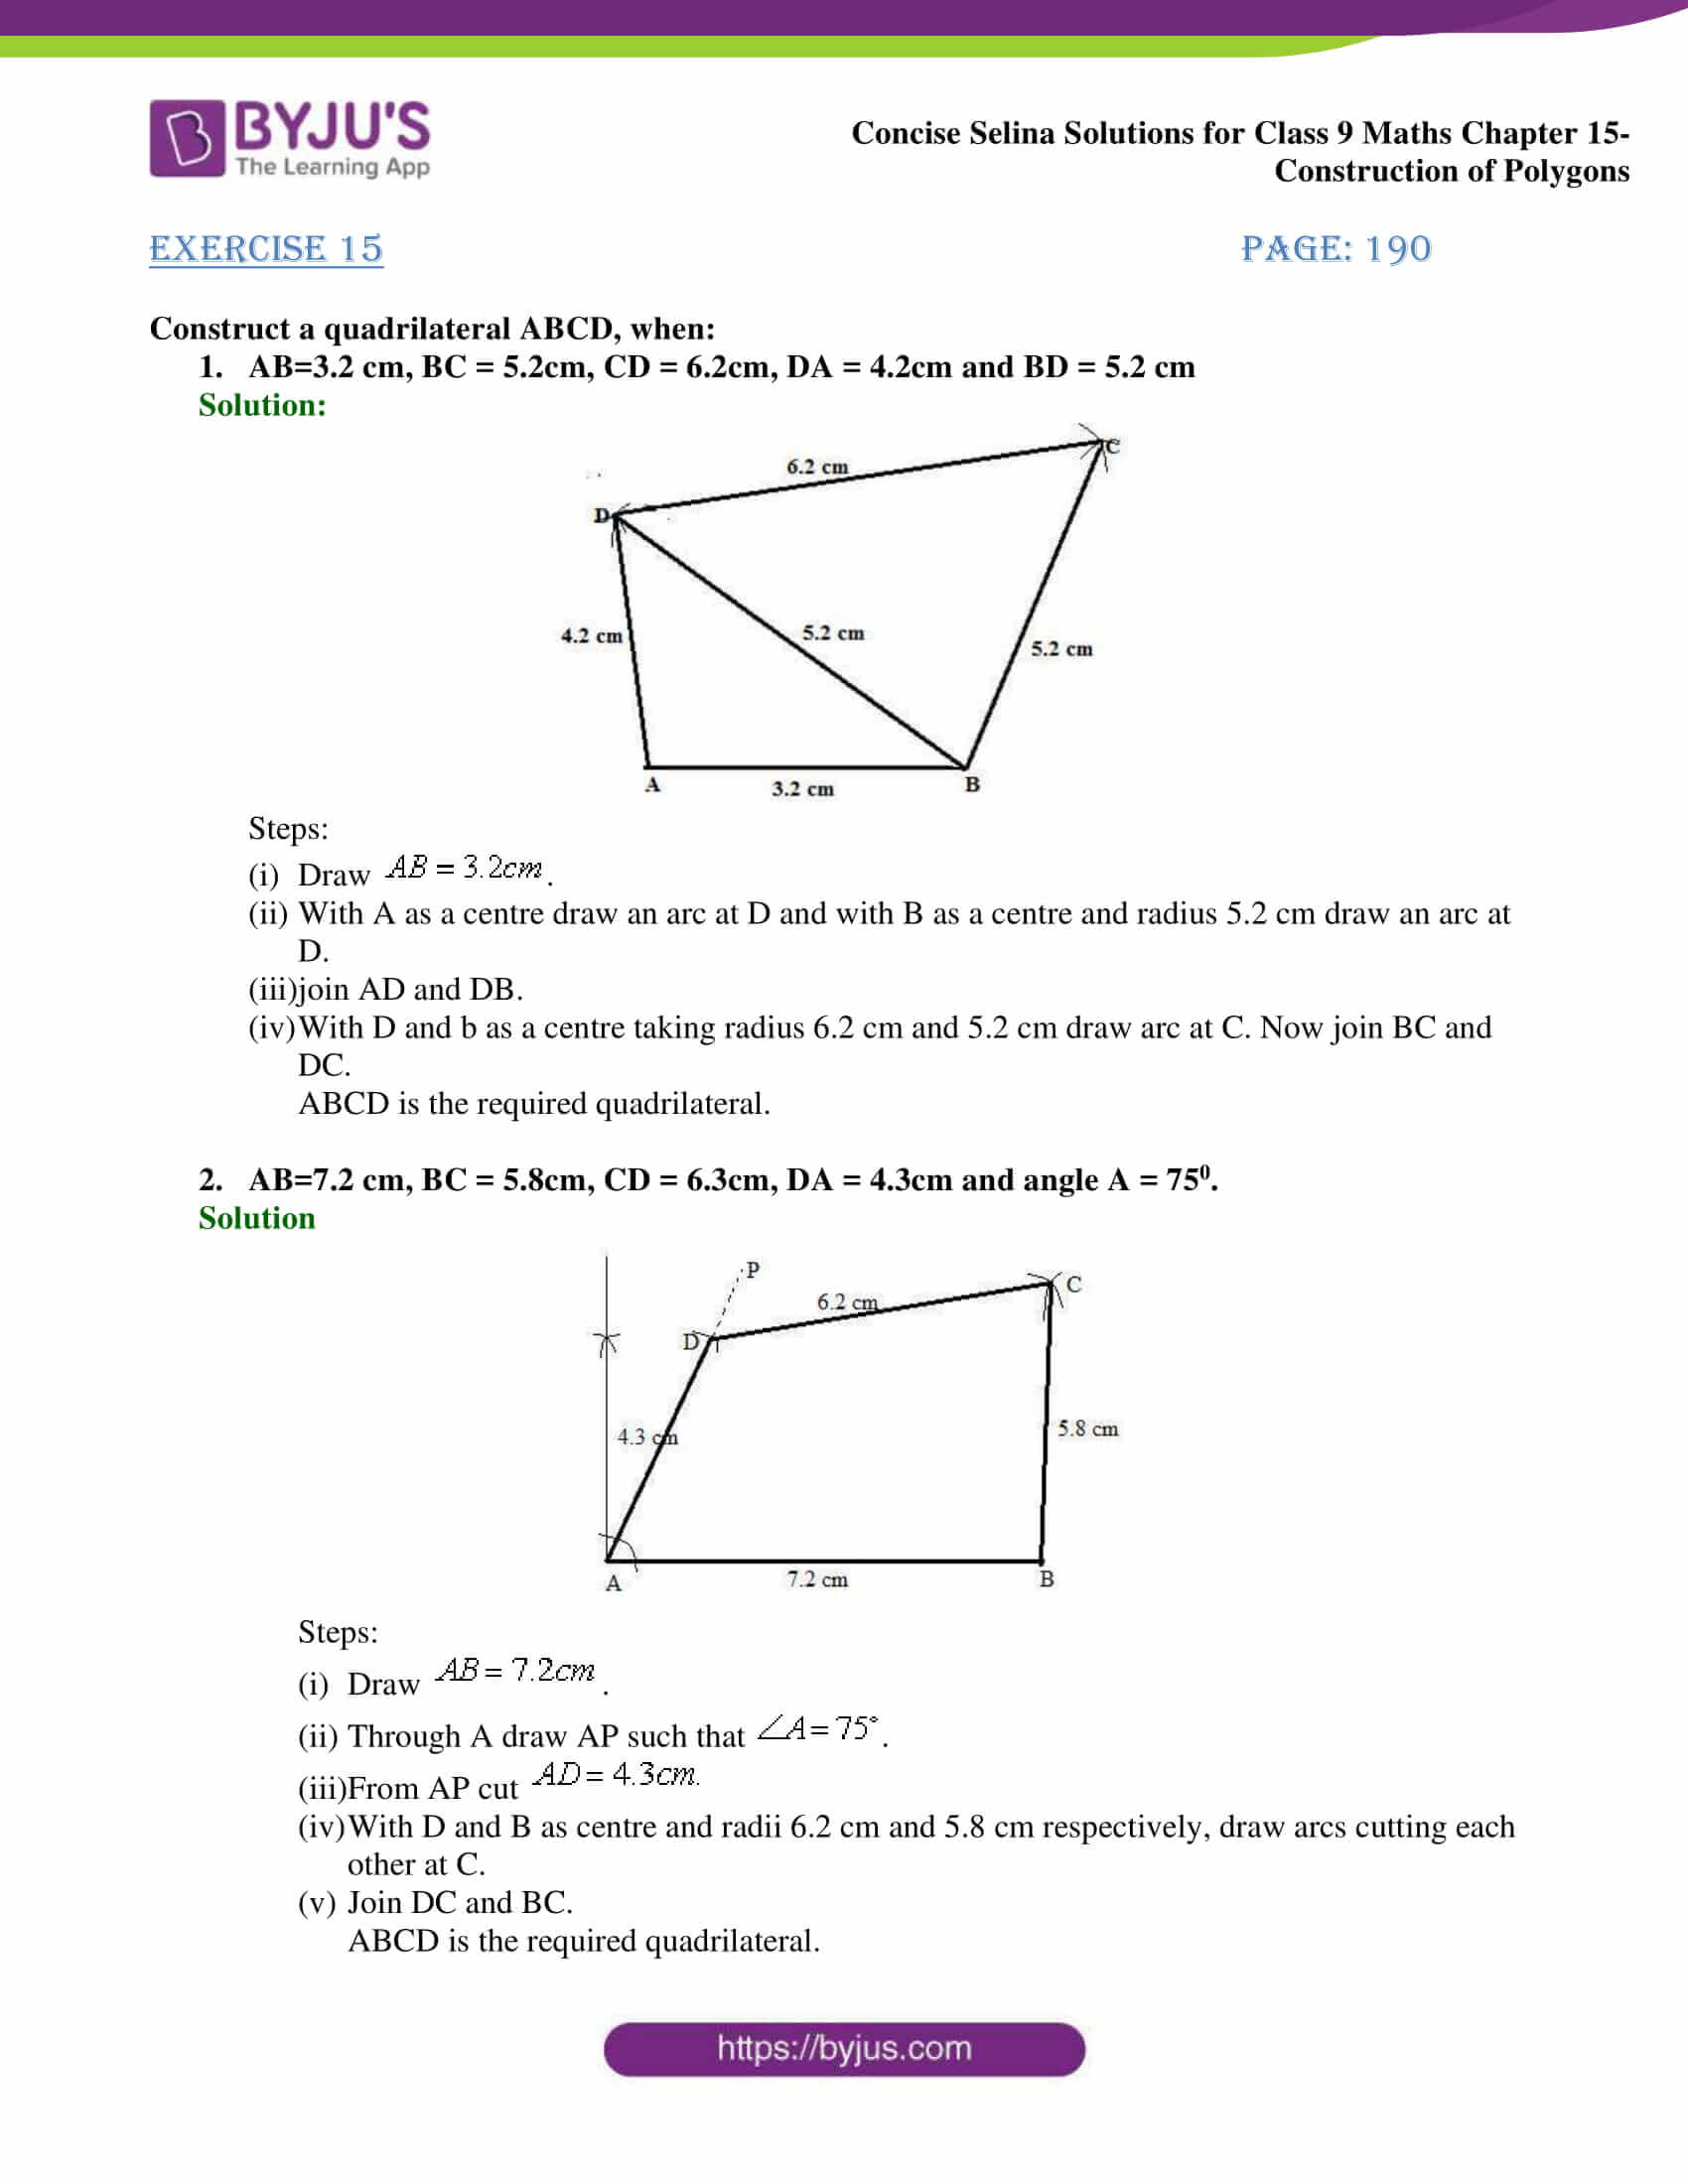 selina Solutions for Class 9 Maths Chapter 15 part 01